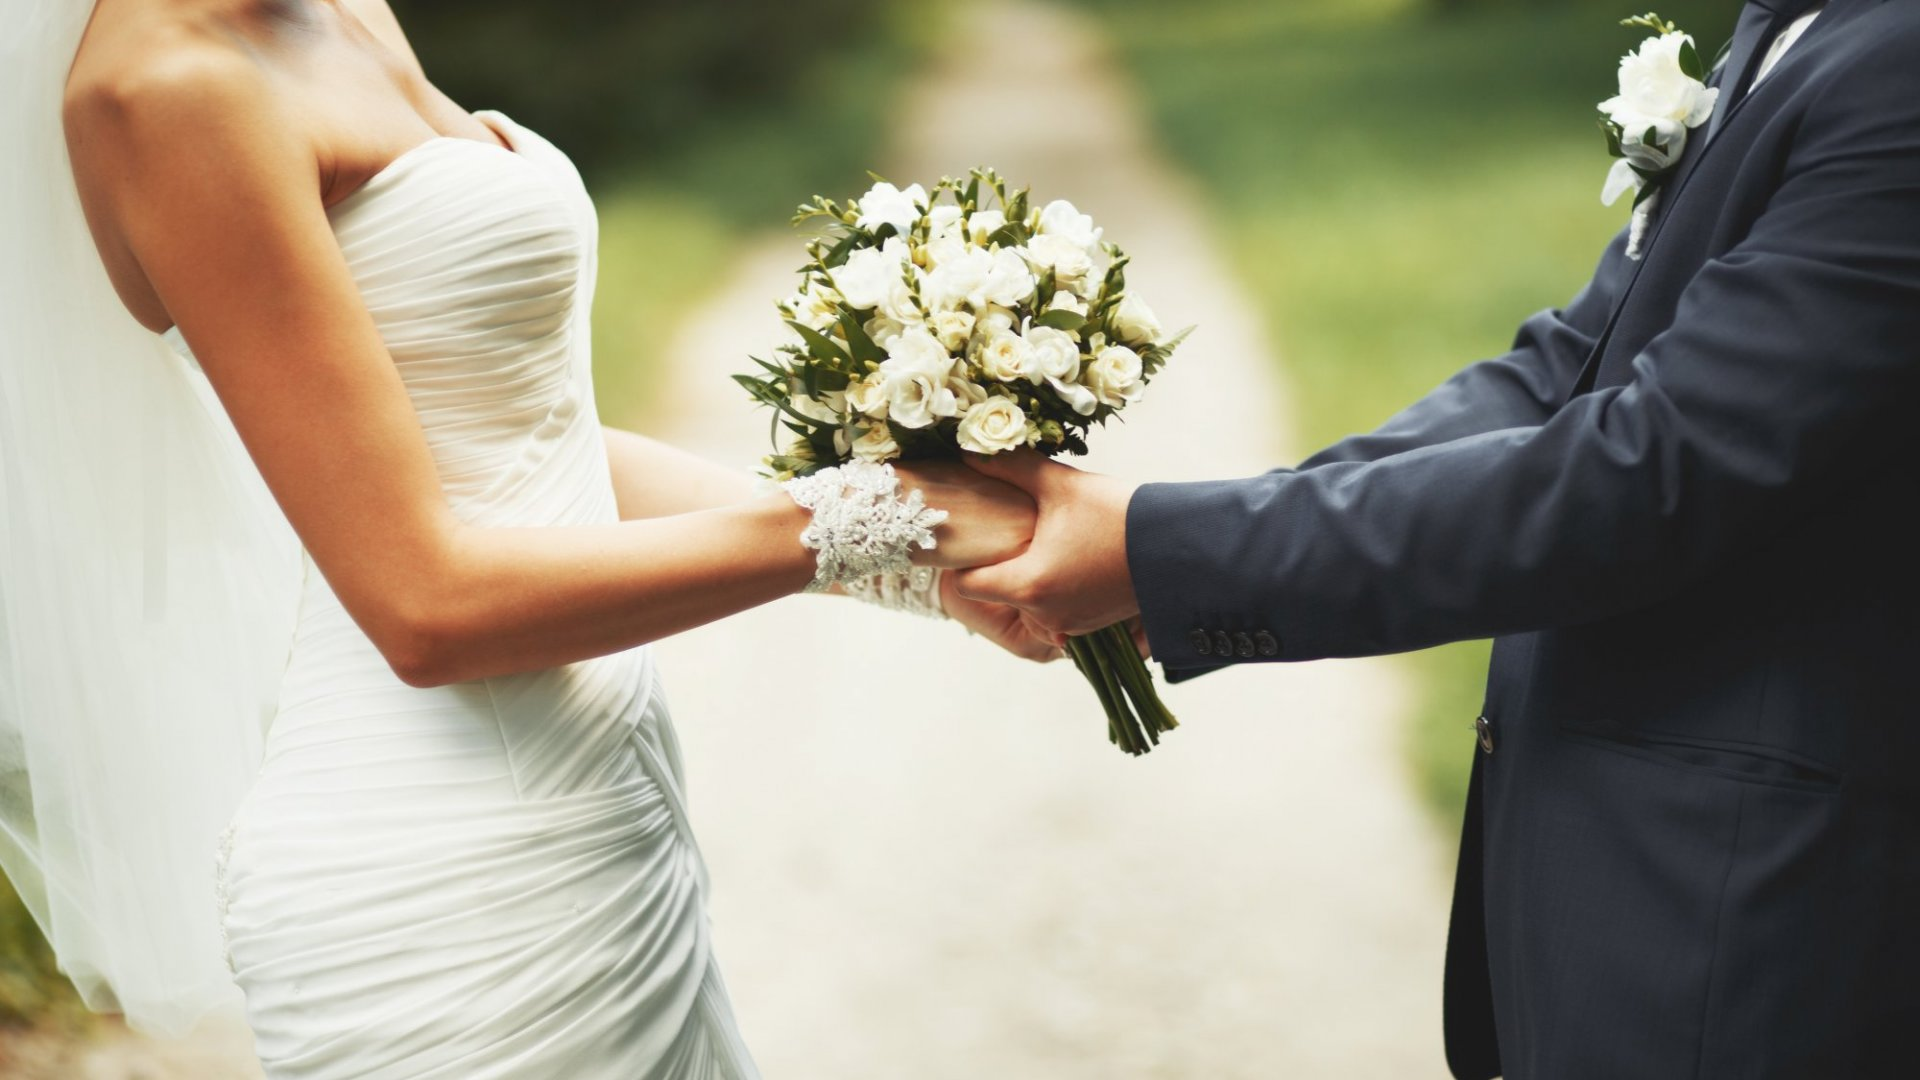 What Entrepreneurs Can Learn From a Successful Marriage